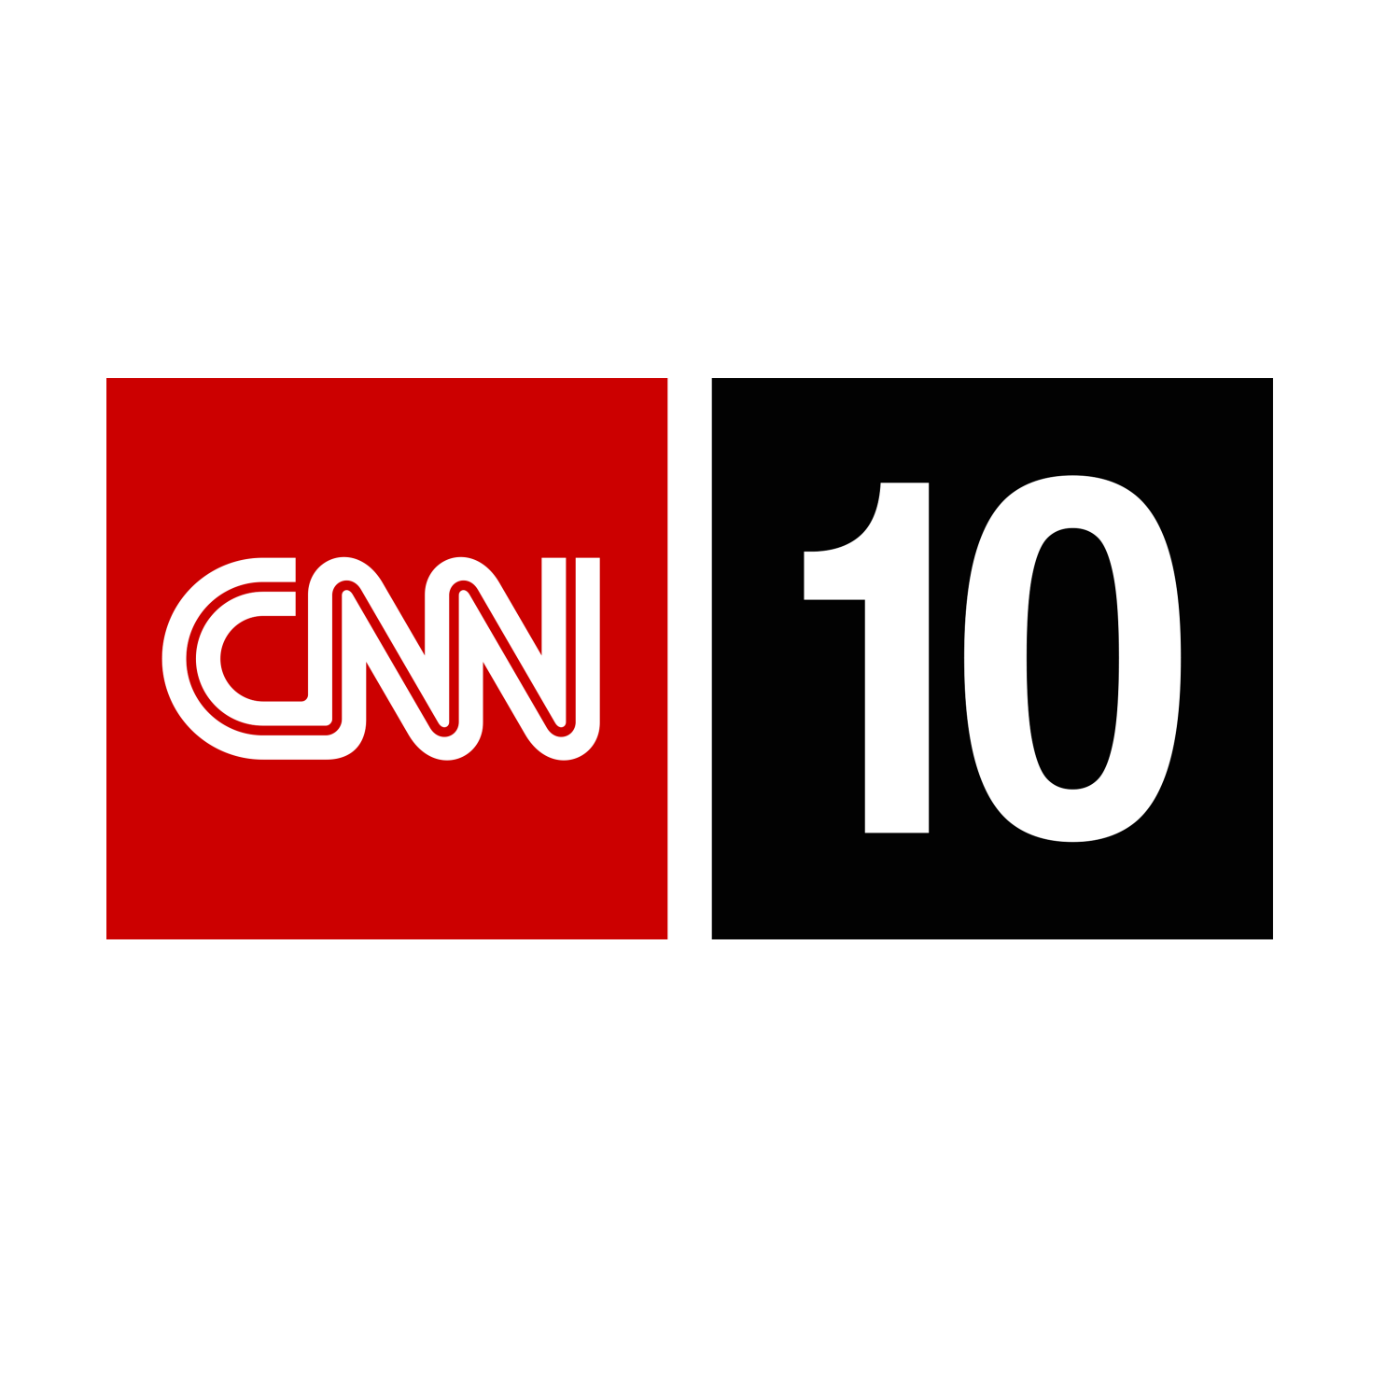 CNN Student News - May 6, 2013